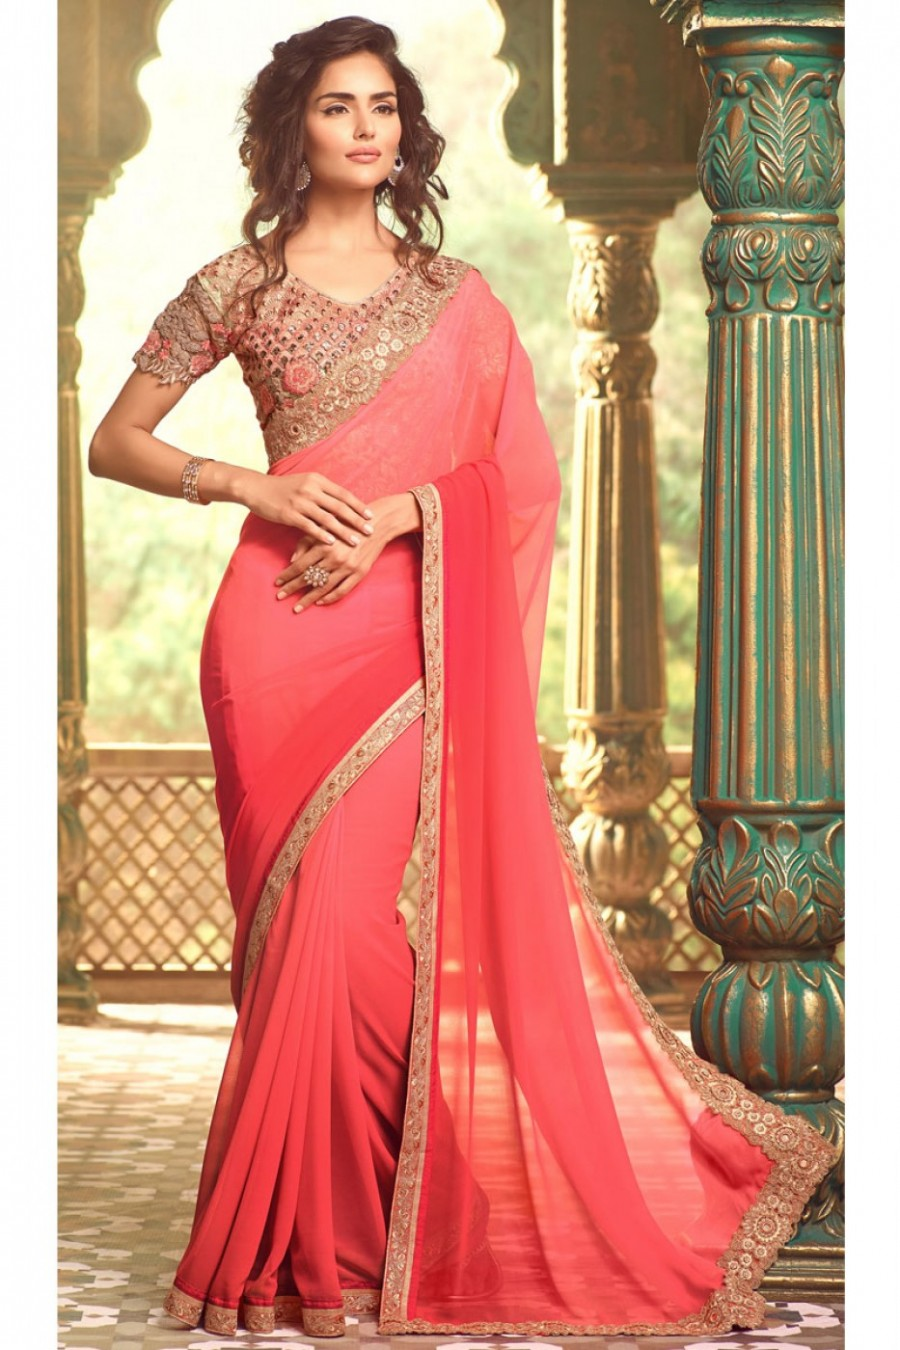 dfc96f6f5d Buy Cut Work Border Georgette Designer Partywear Saree in Light Pink and  Rose Color with Fancy